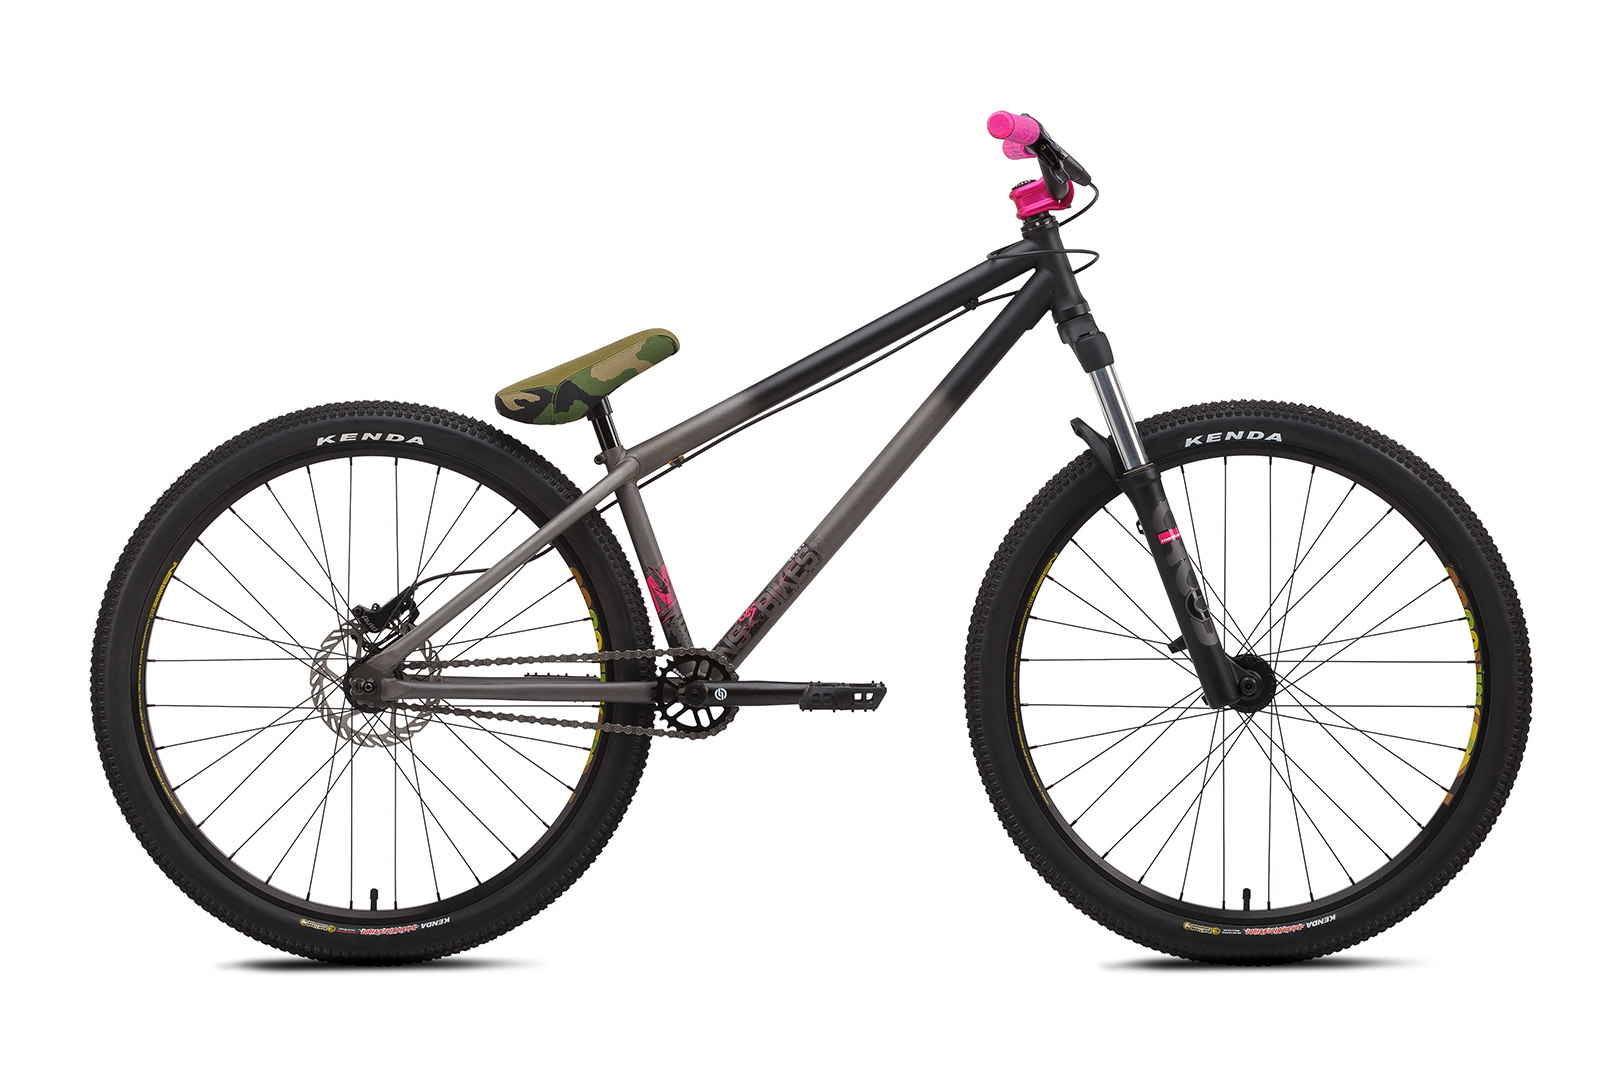 hardtail mountainbikes 26 bike mailorder. Black Bedroom Furniture Sets. Home Design Ideas